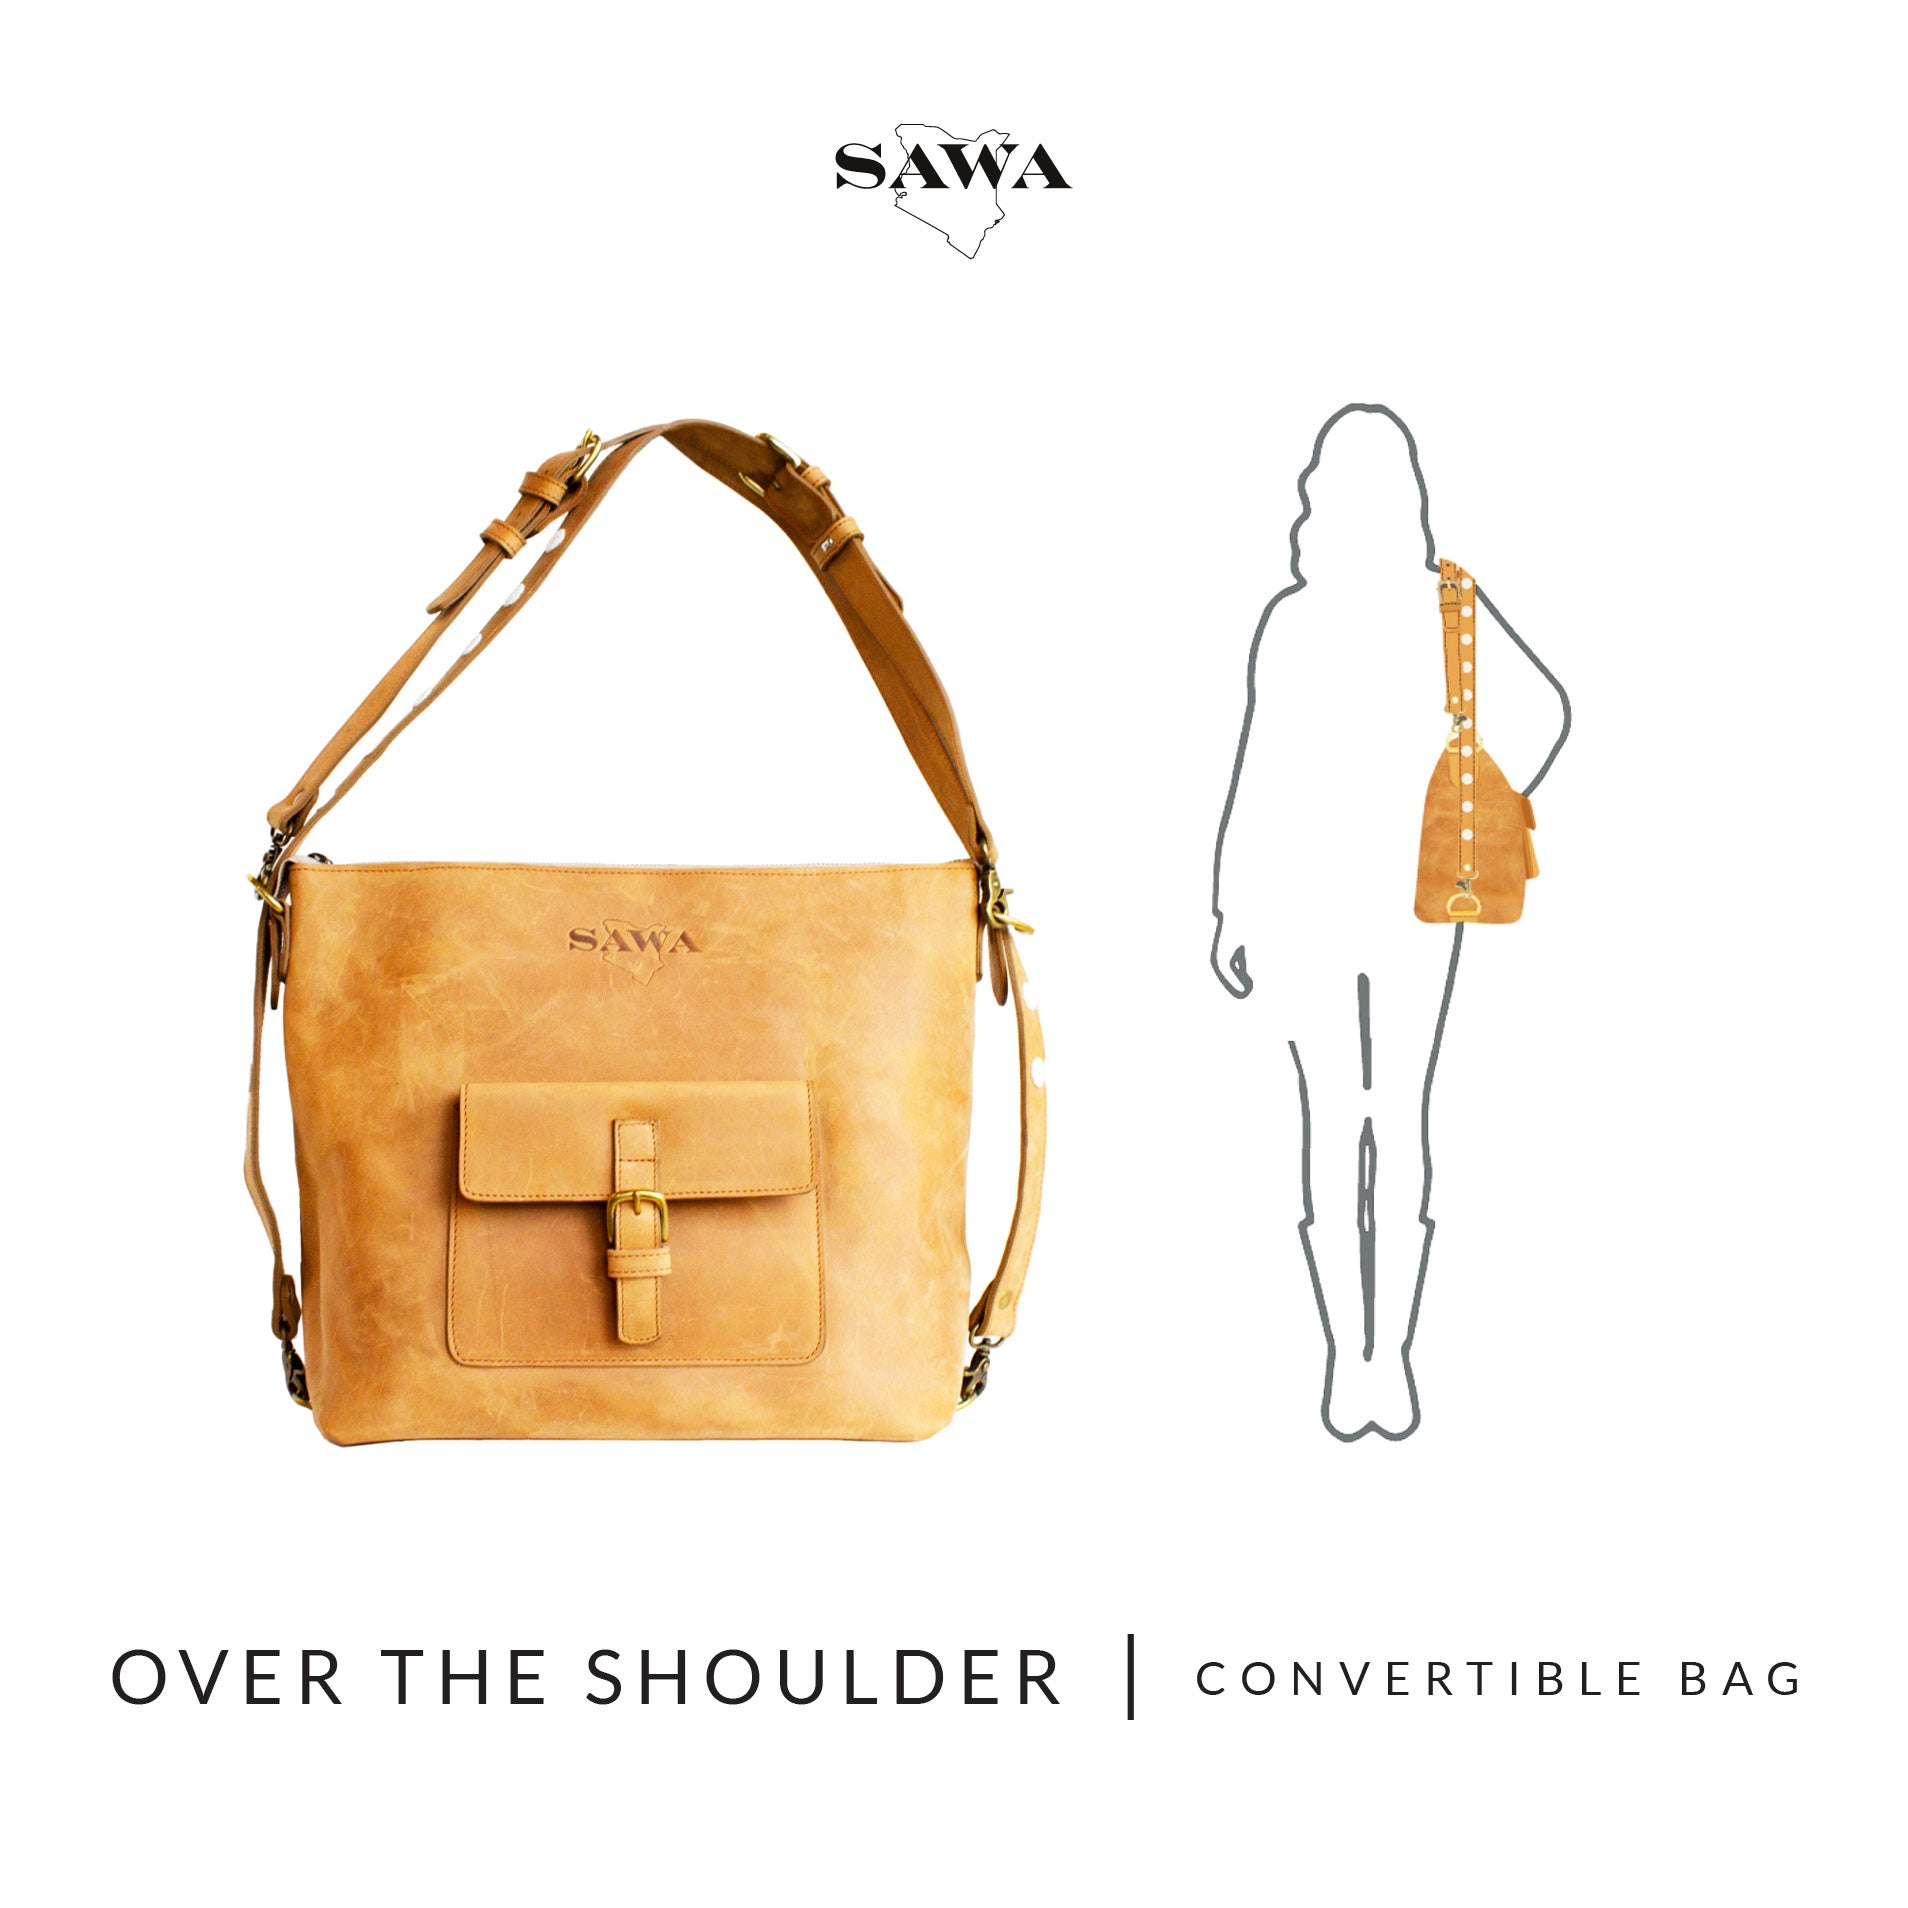 How To Wear - Over The Shoulder Bag / Handbag - The Sawa Shop Convertible Bag